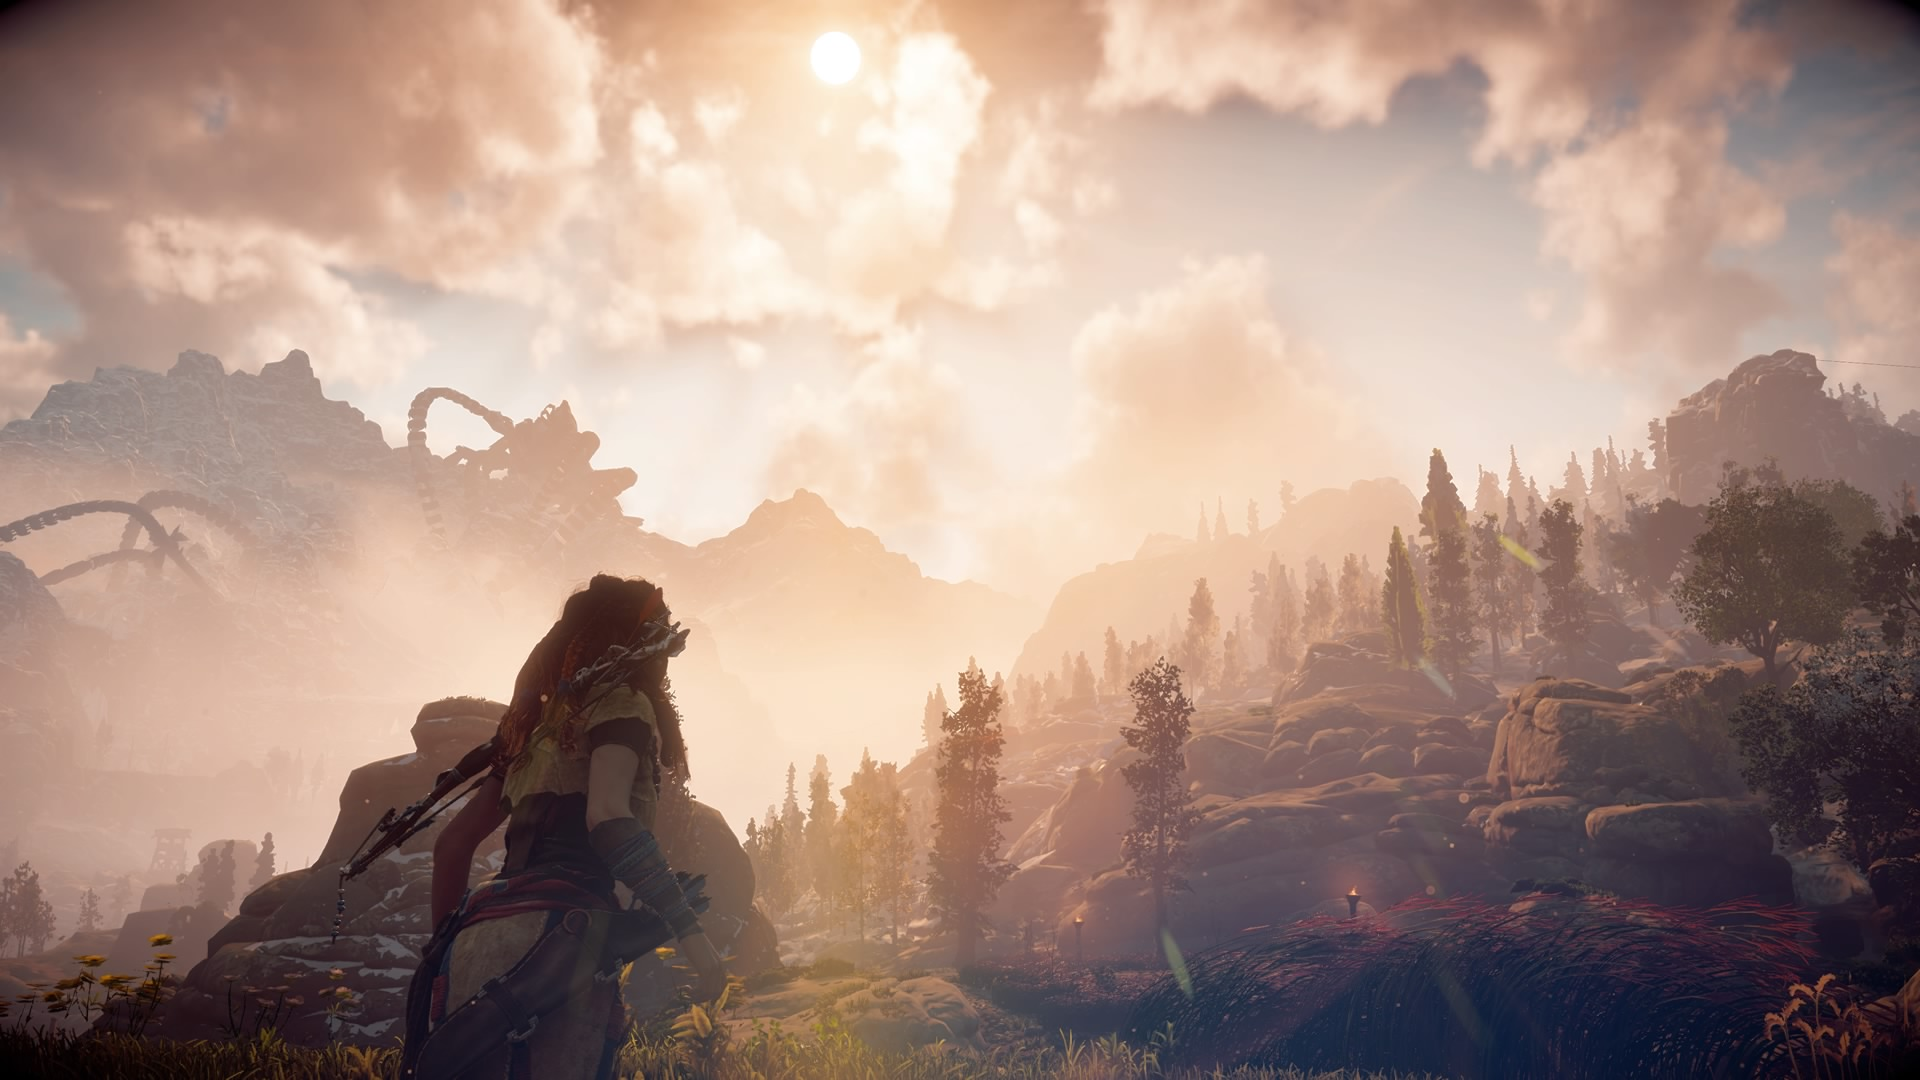 horizon_zero_dawn_20170305221700.jpg